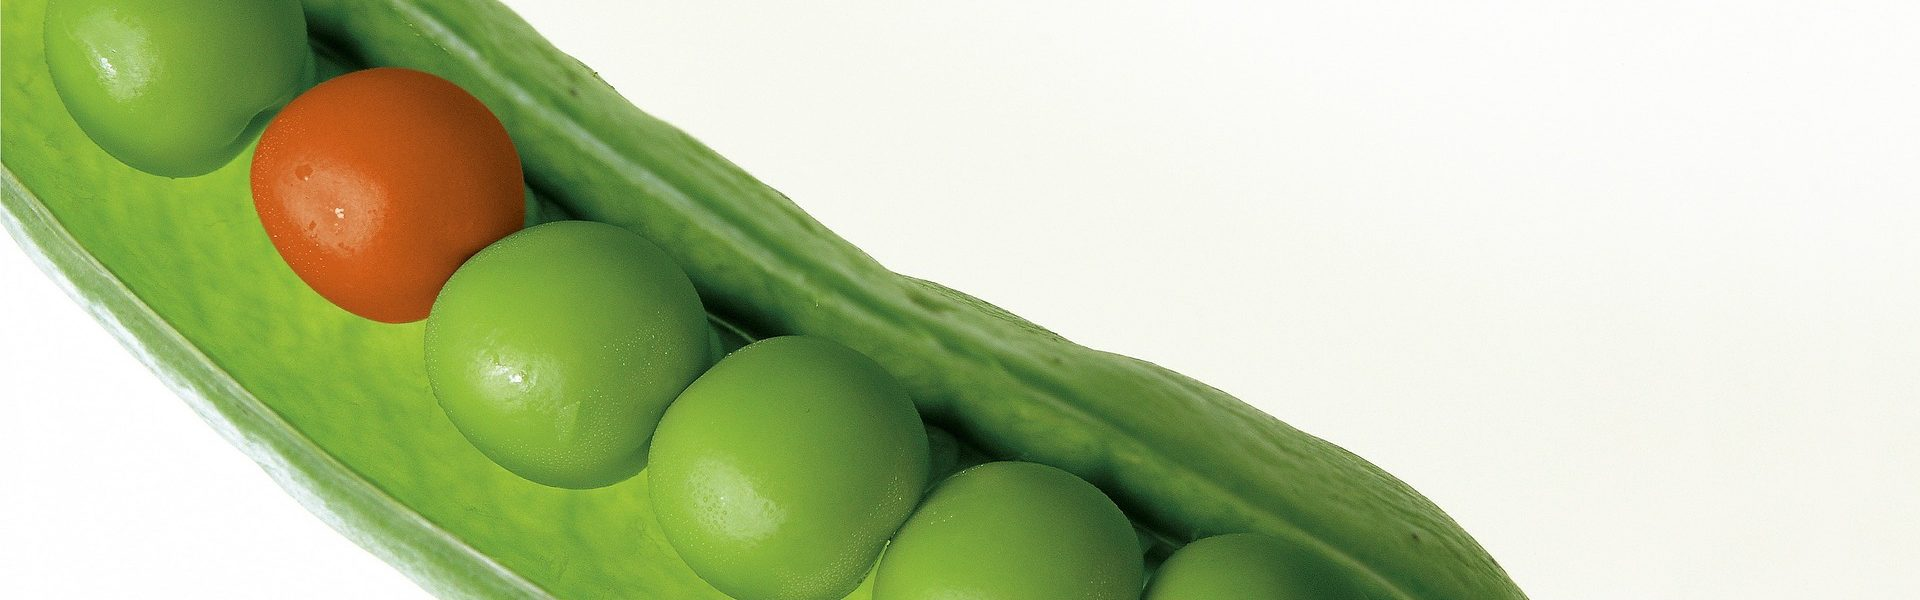 peas-cropped_1920